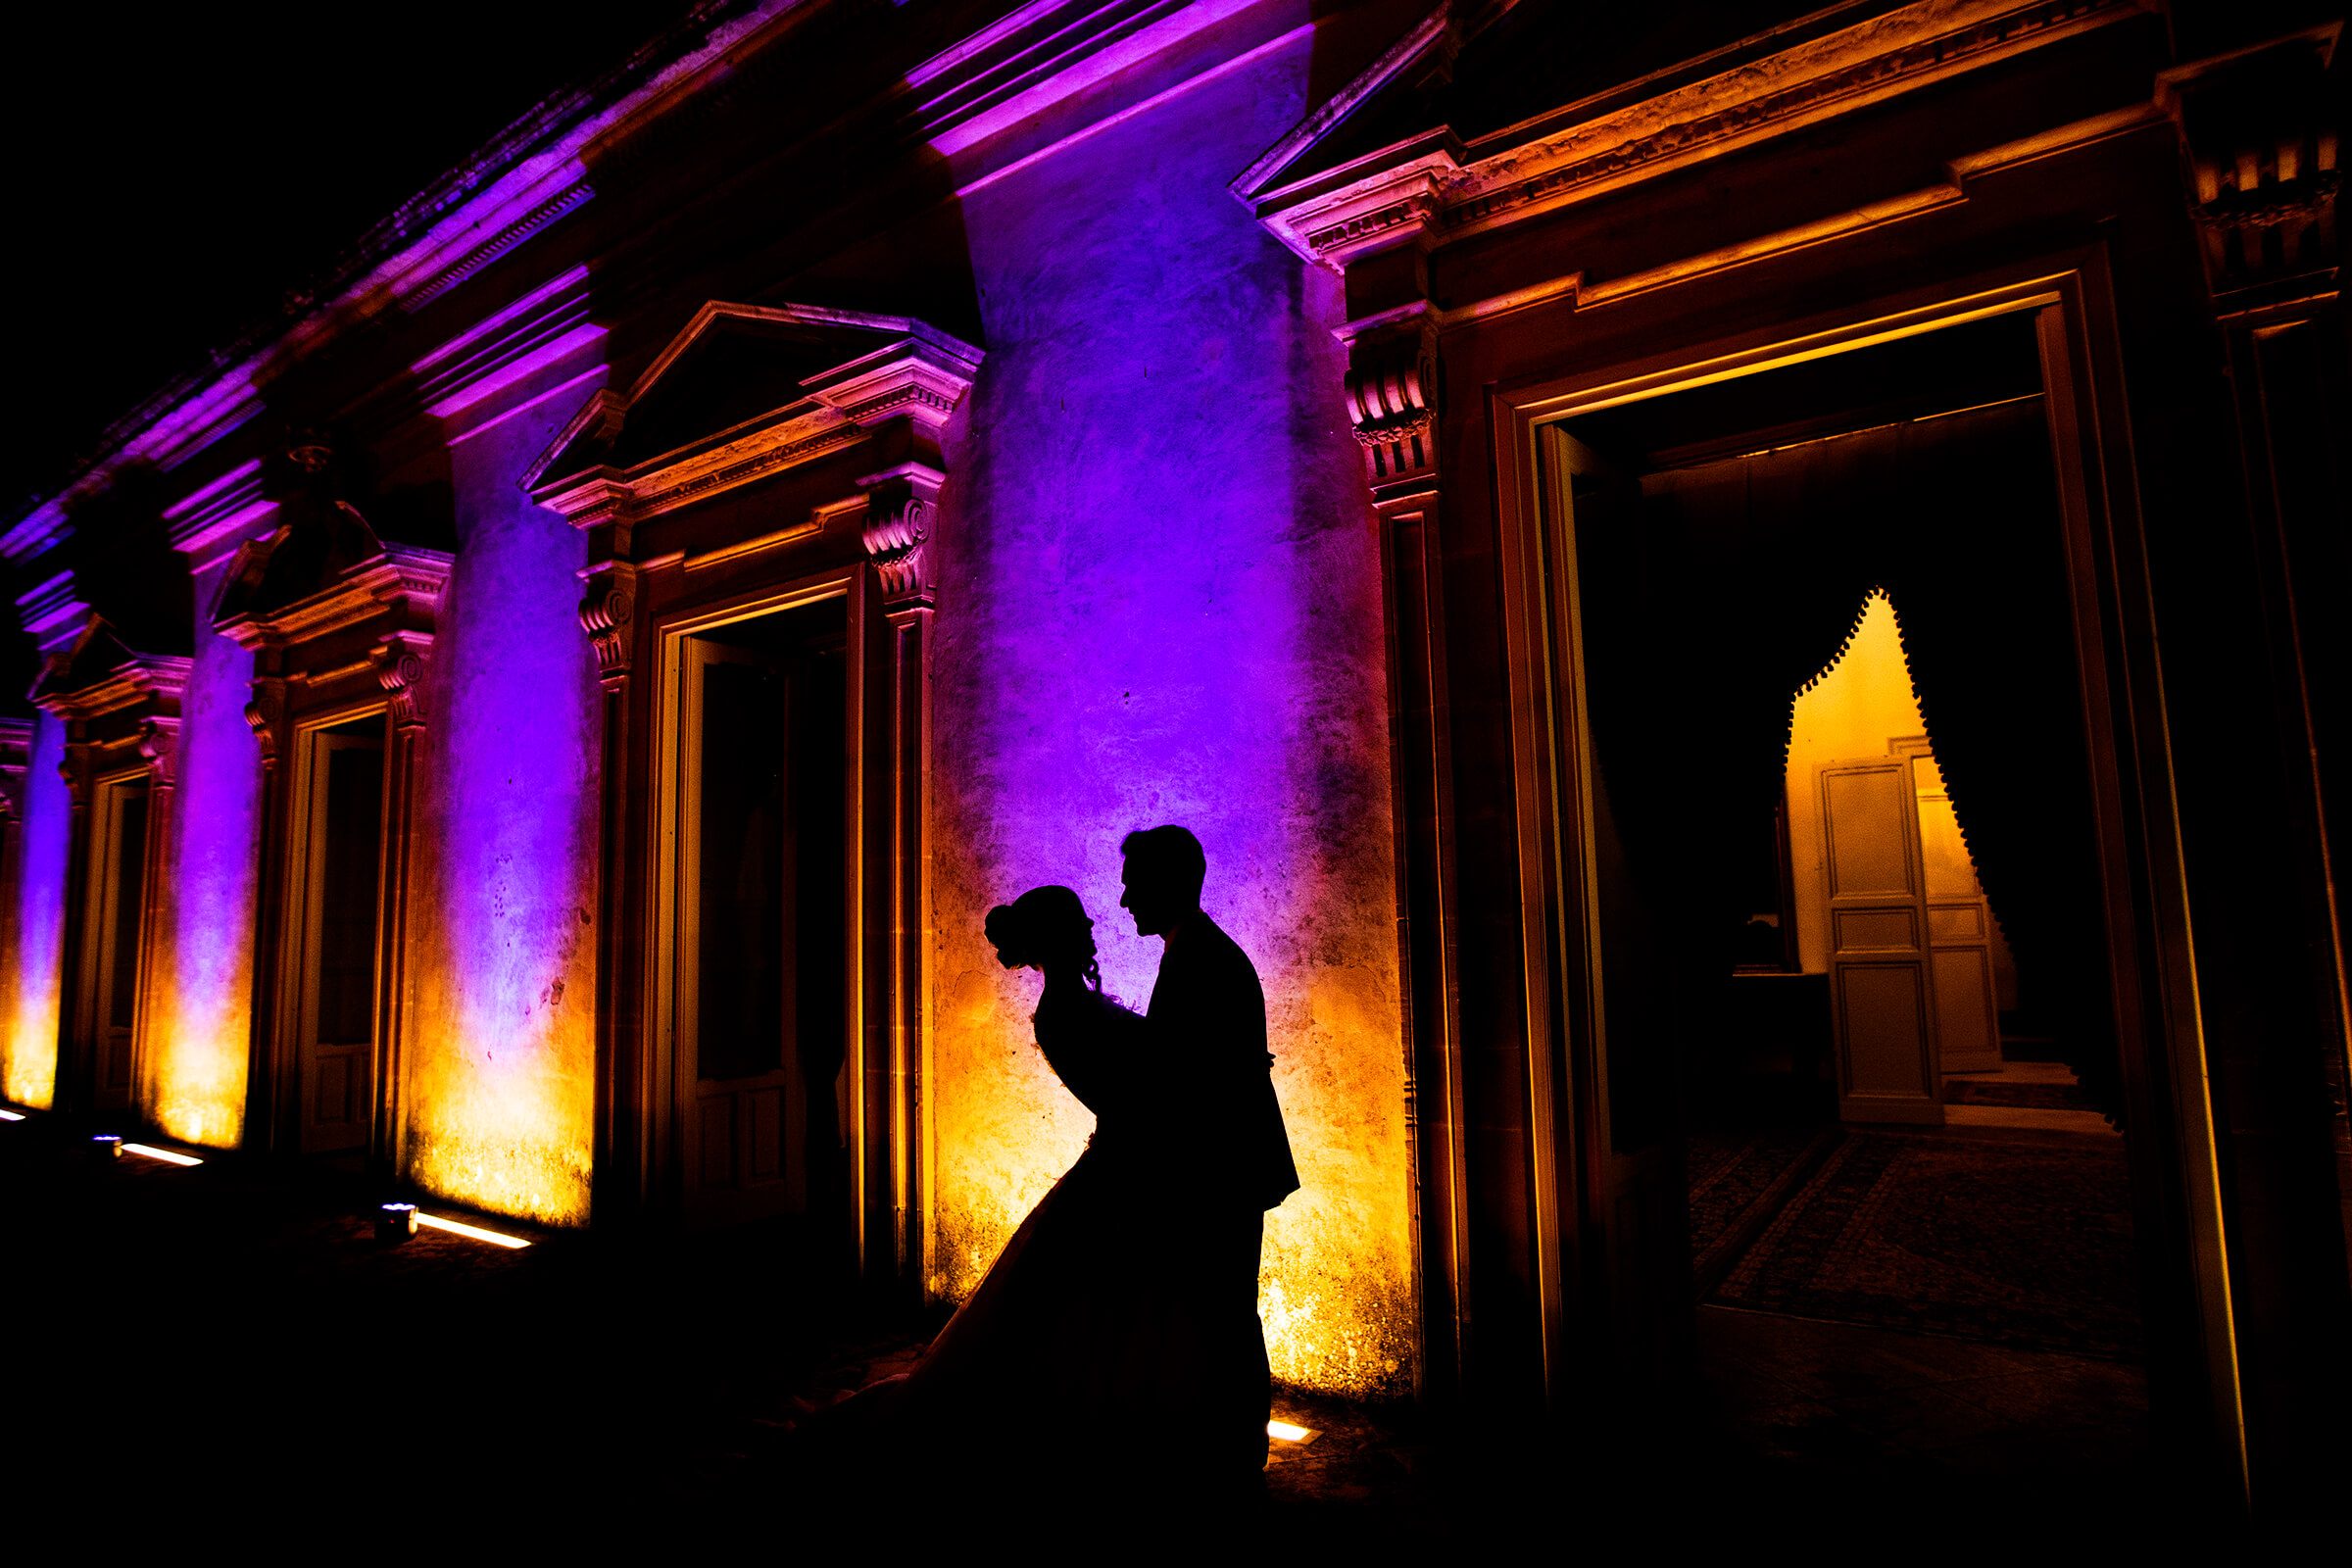 dramatic-lightning-silhouette-couple-against-architecture-in-sicily-nino-lombardo-photographer